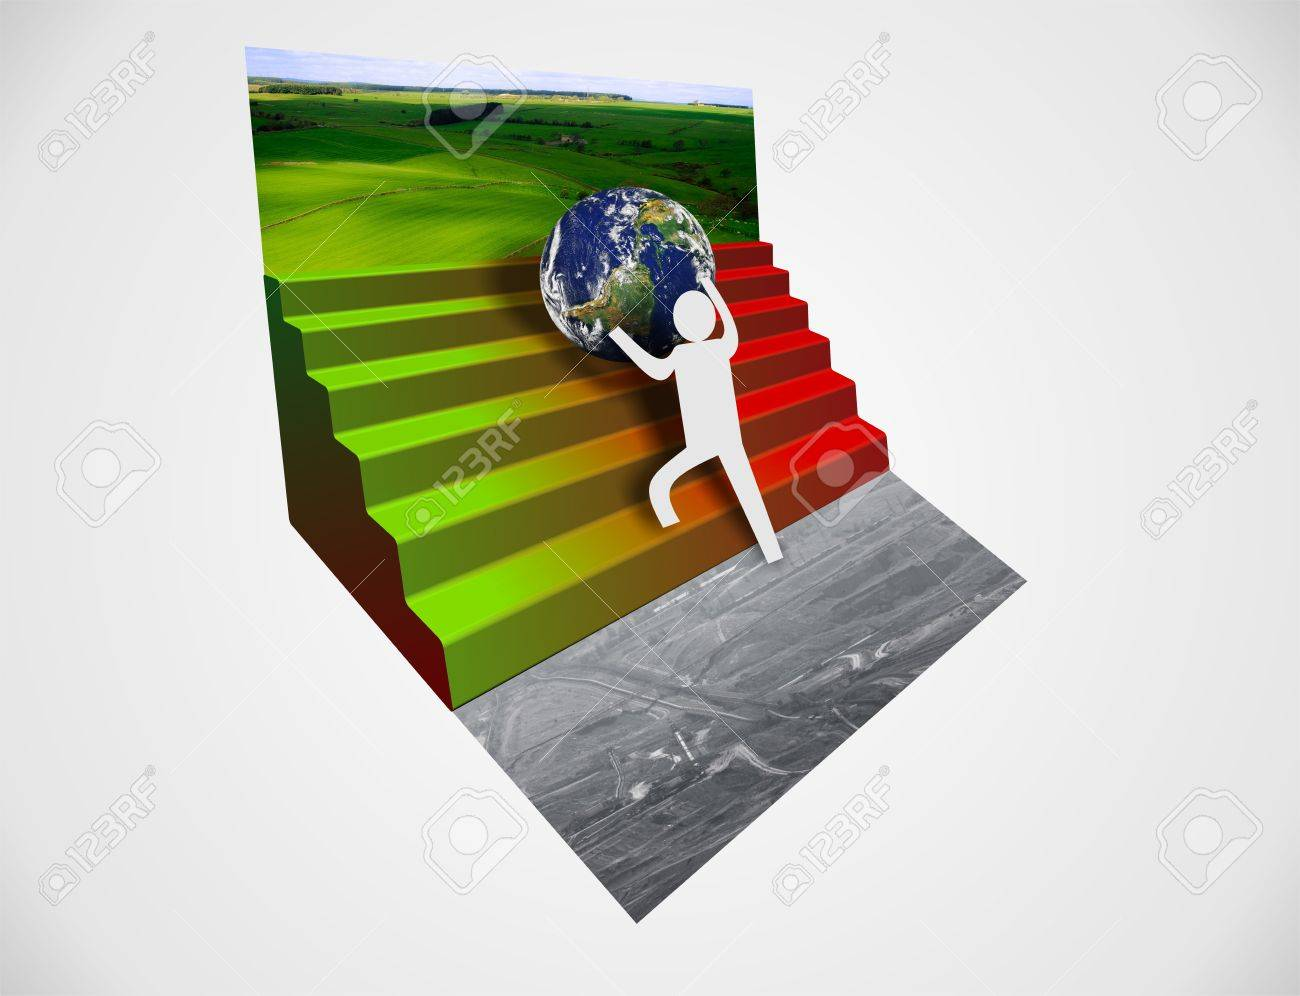 man protecting earth from destruction Stock Photo - 19551032